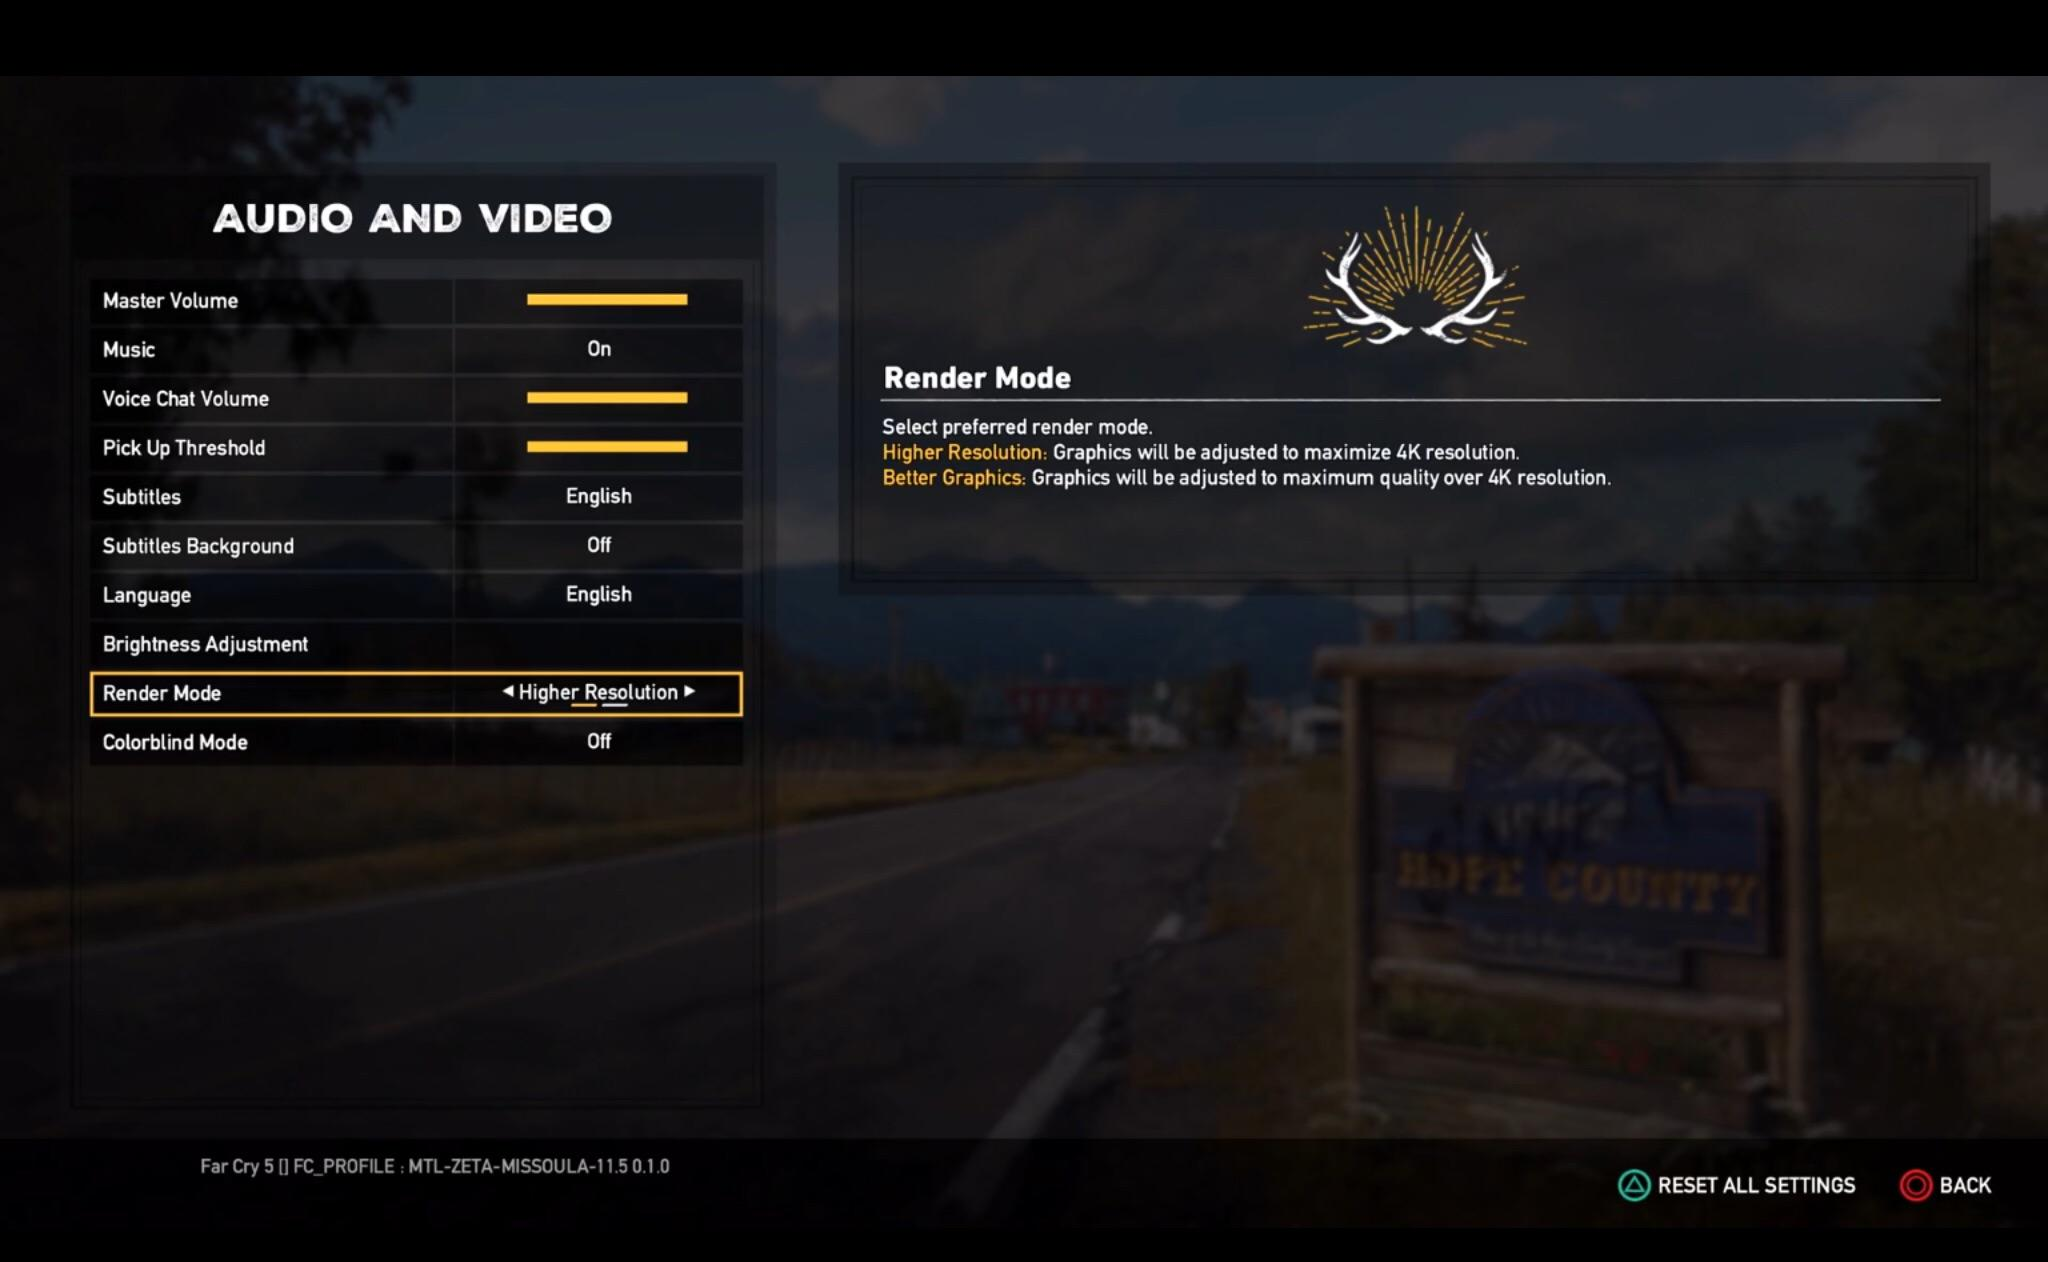 Far Cry 5 Ps4 Pro Render Mode Includes Higher Res Or Better